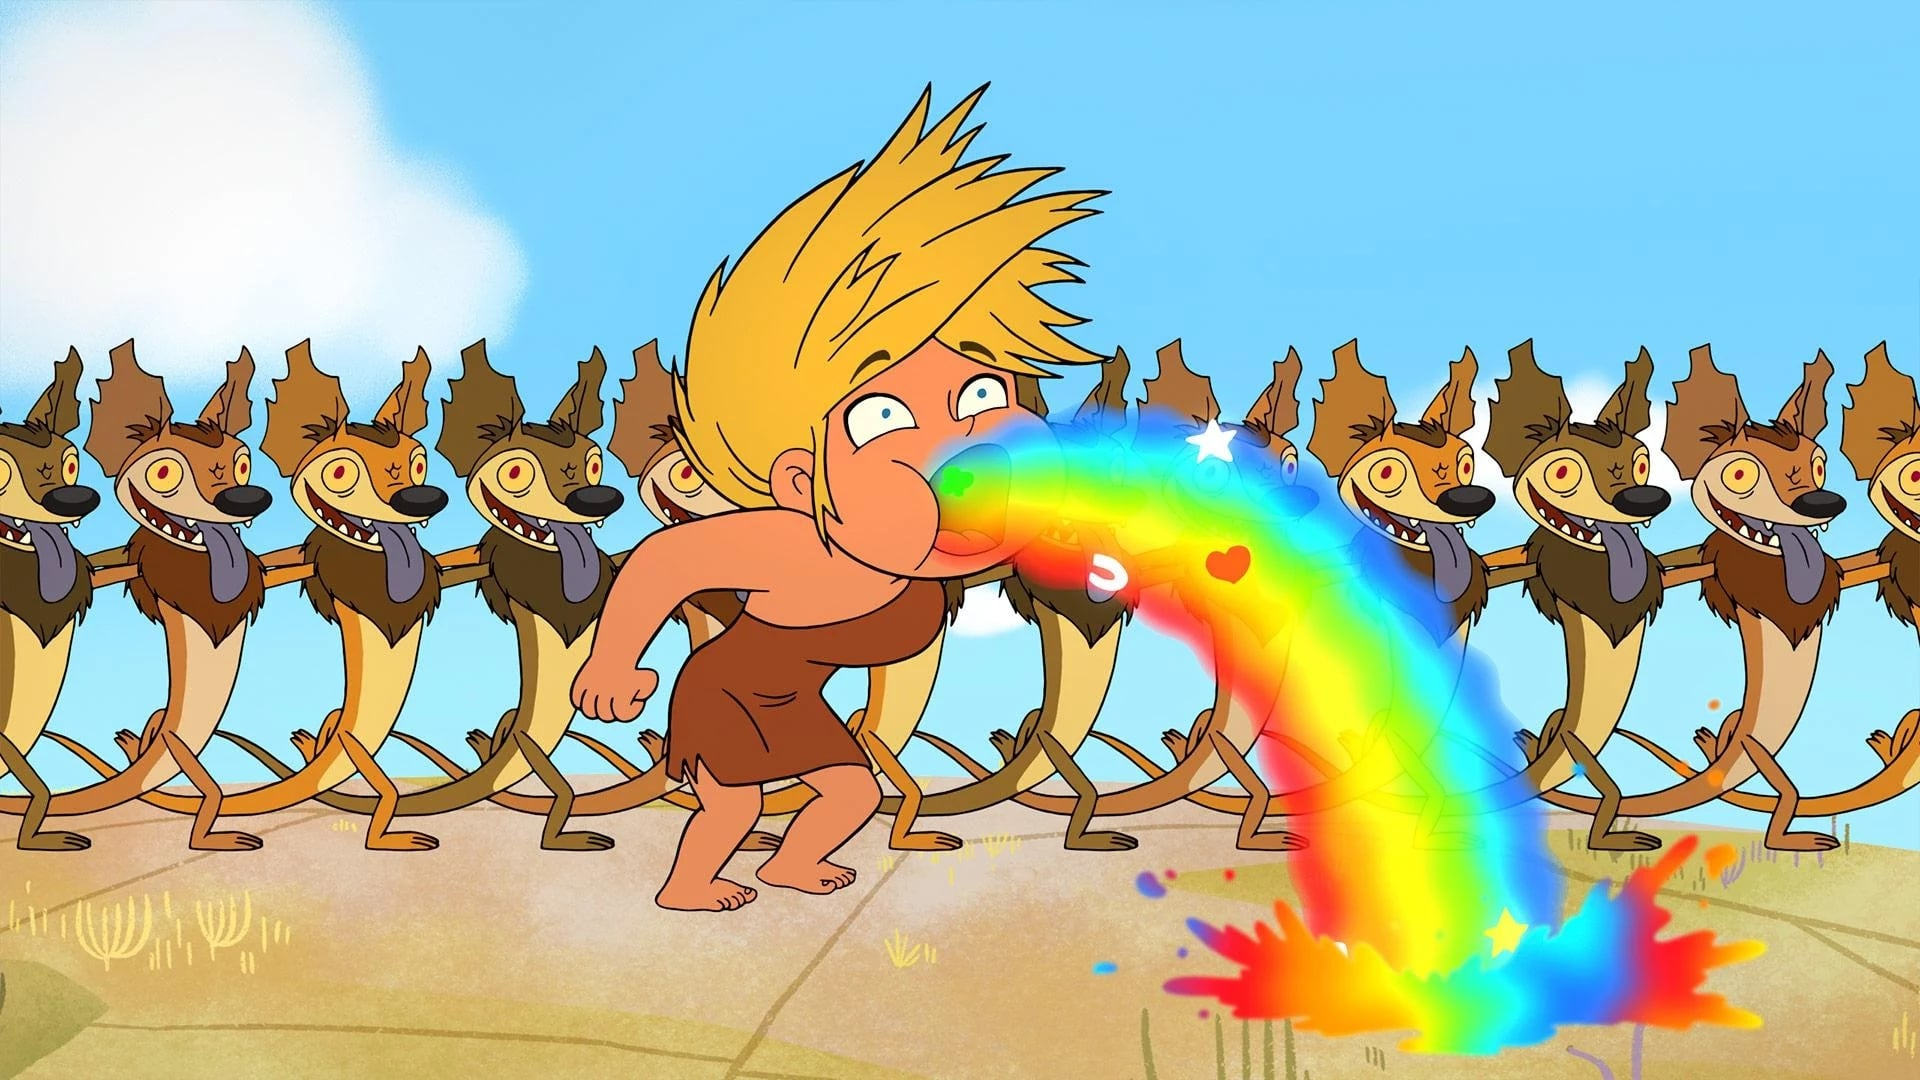 Dawn of the Croods: Temporada 1, Capitulo 6